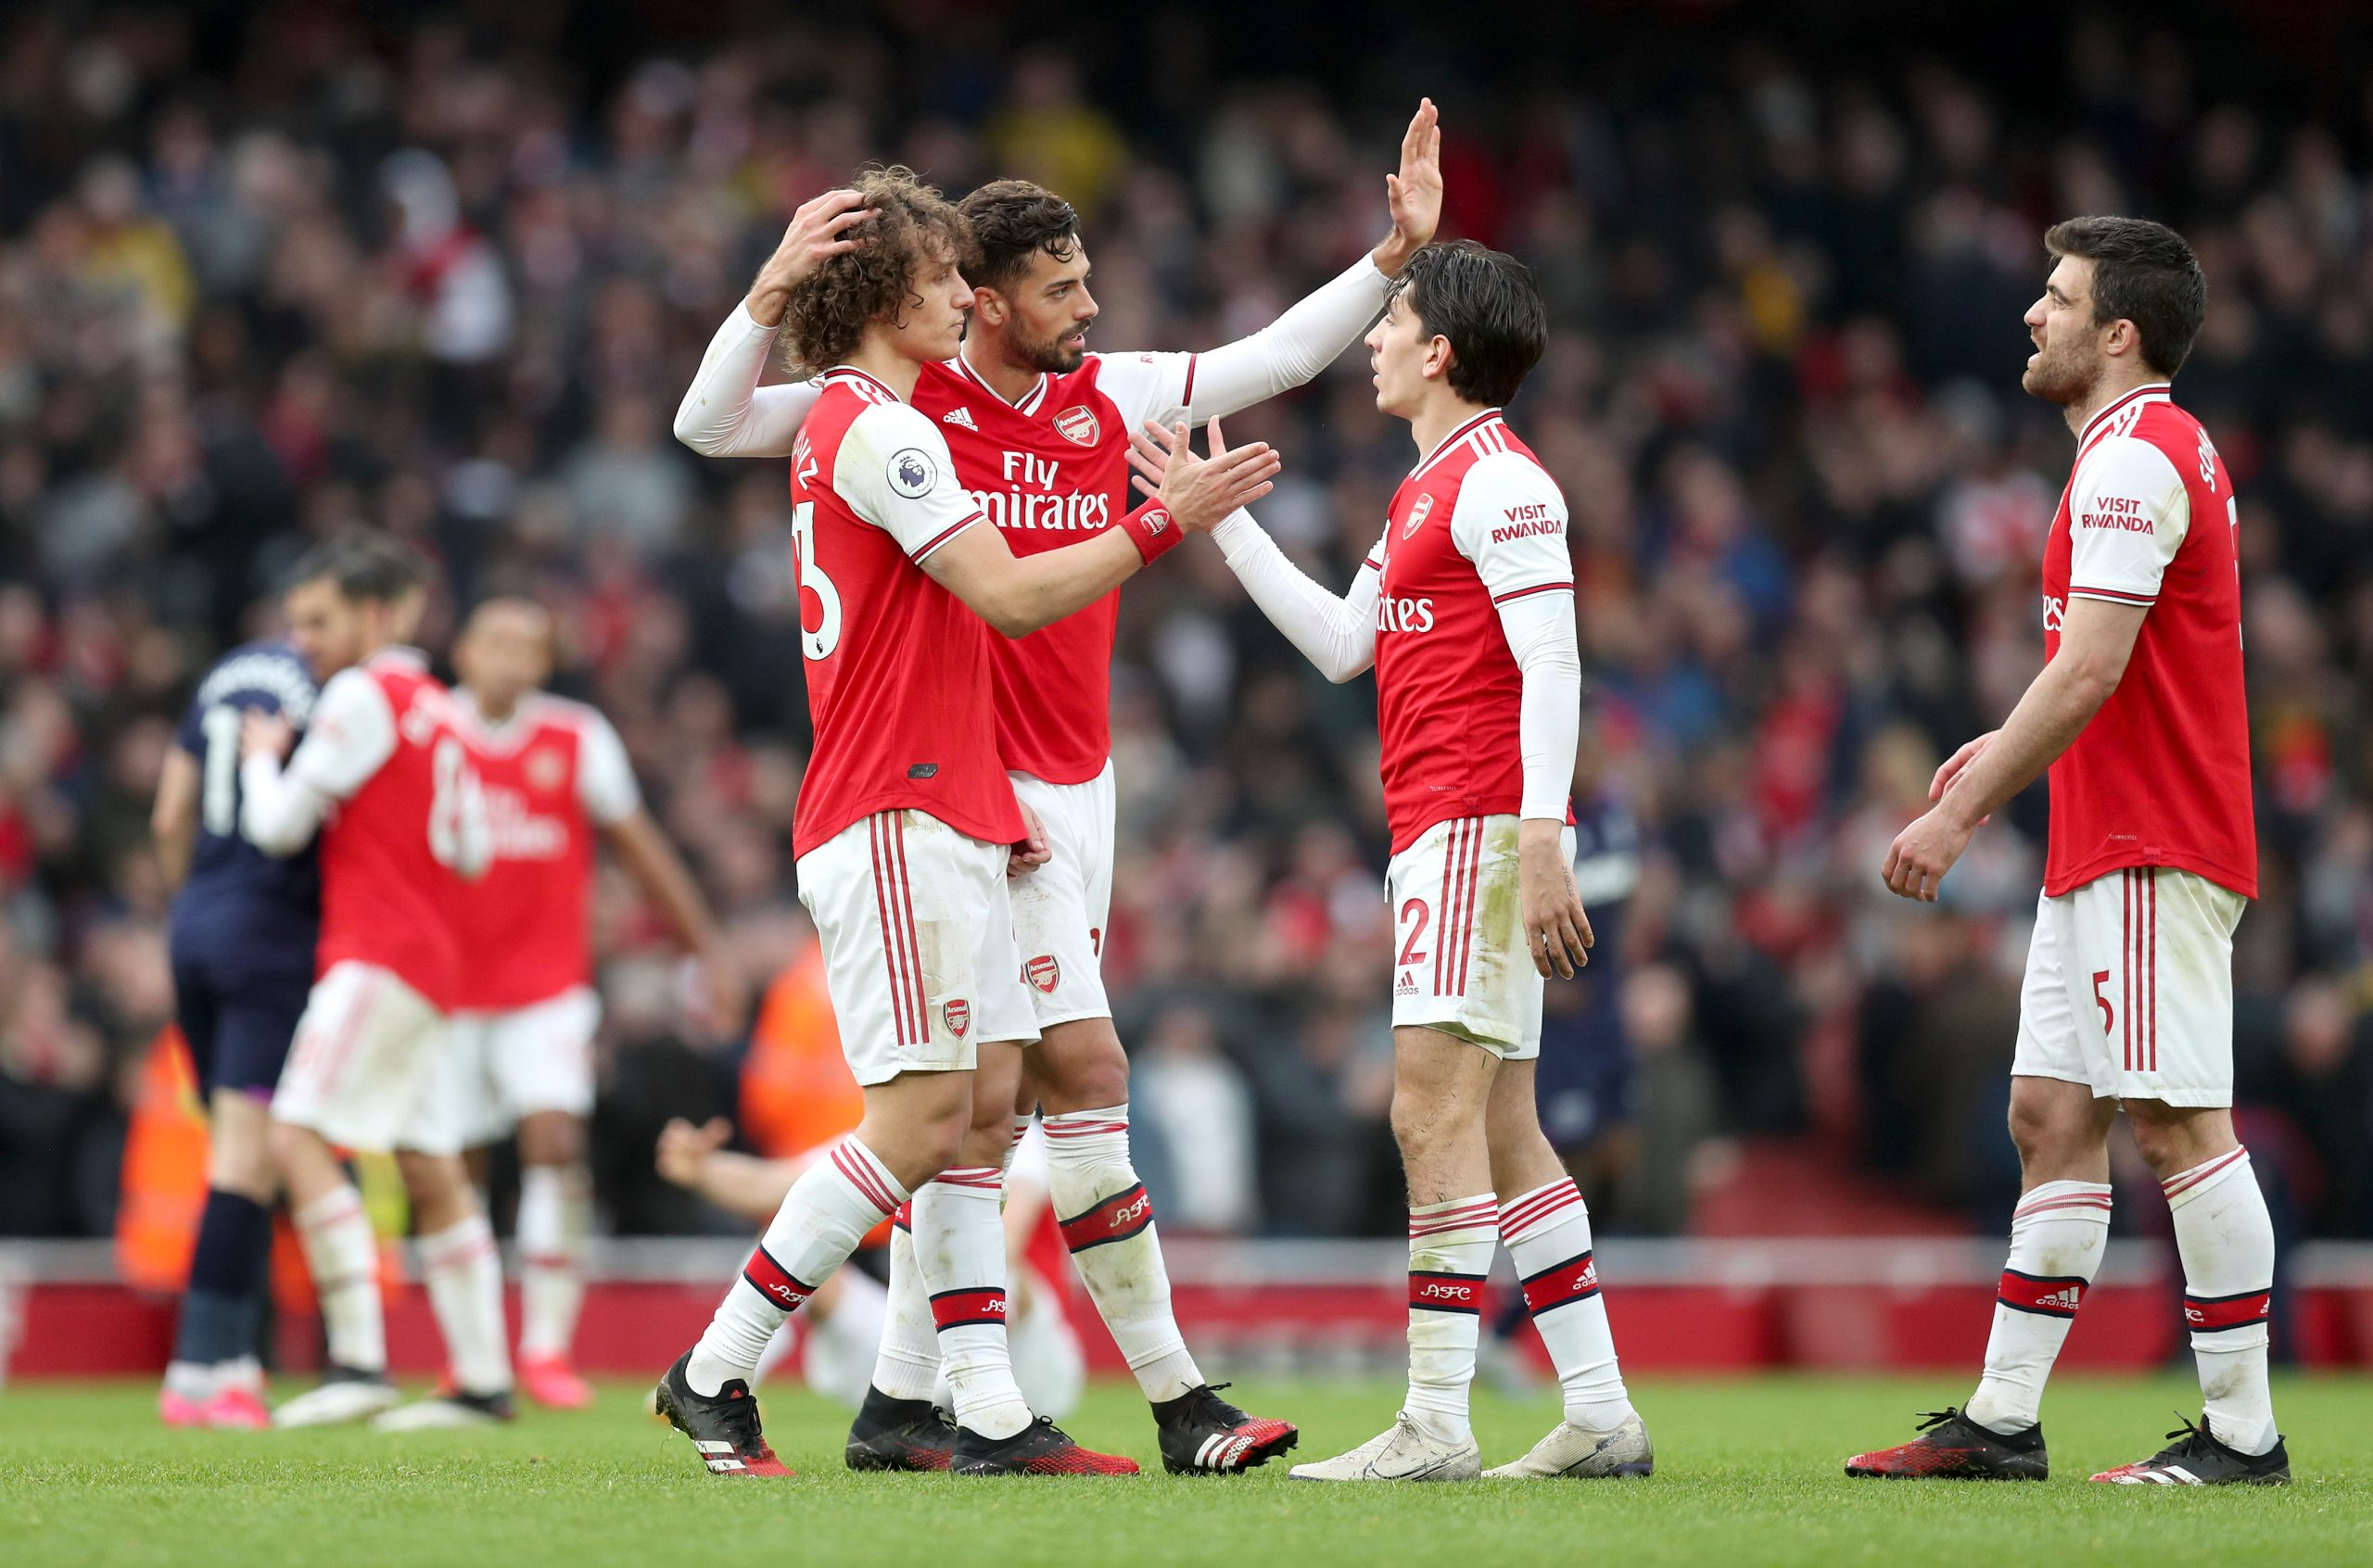 Players of Arsenal celebrate following the Premier League match between Arsenal FC and West Ham United at Emirates Stadium on March 07, 2020 in London, United Kingdom.